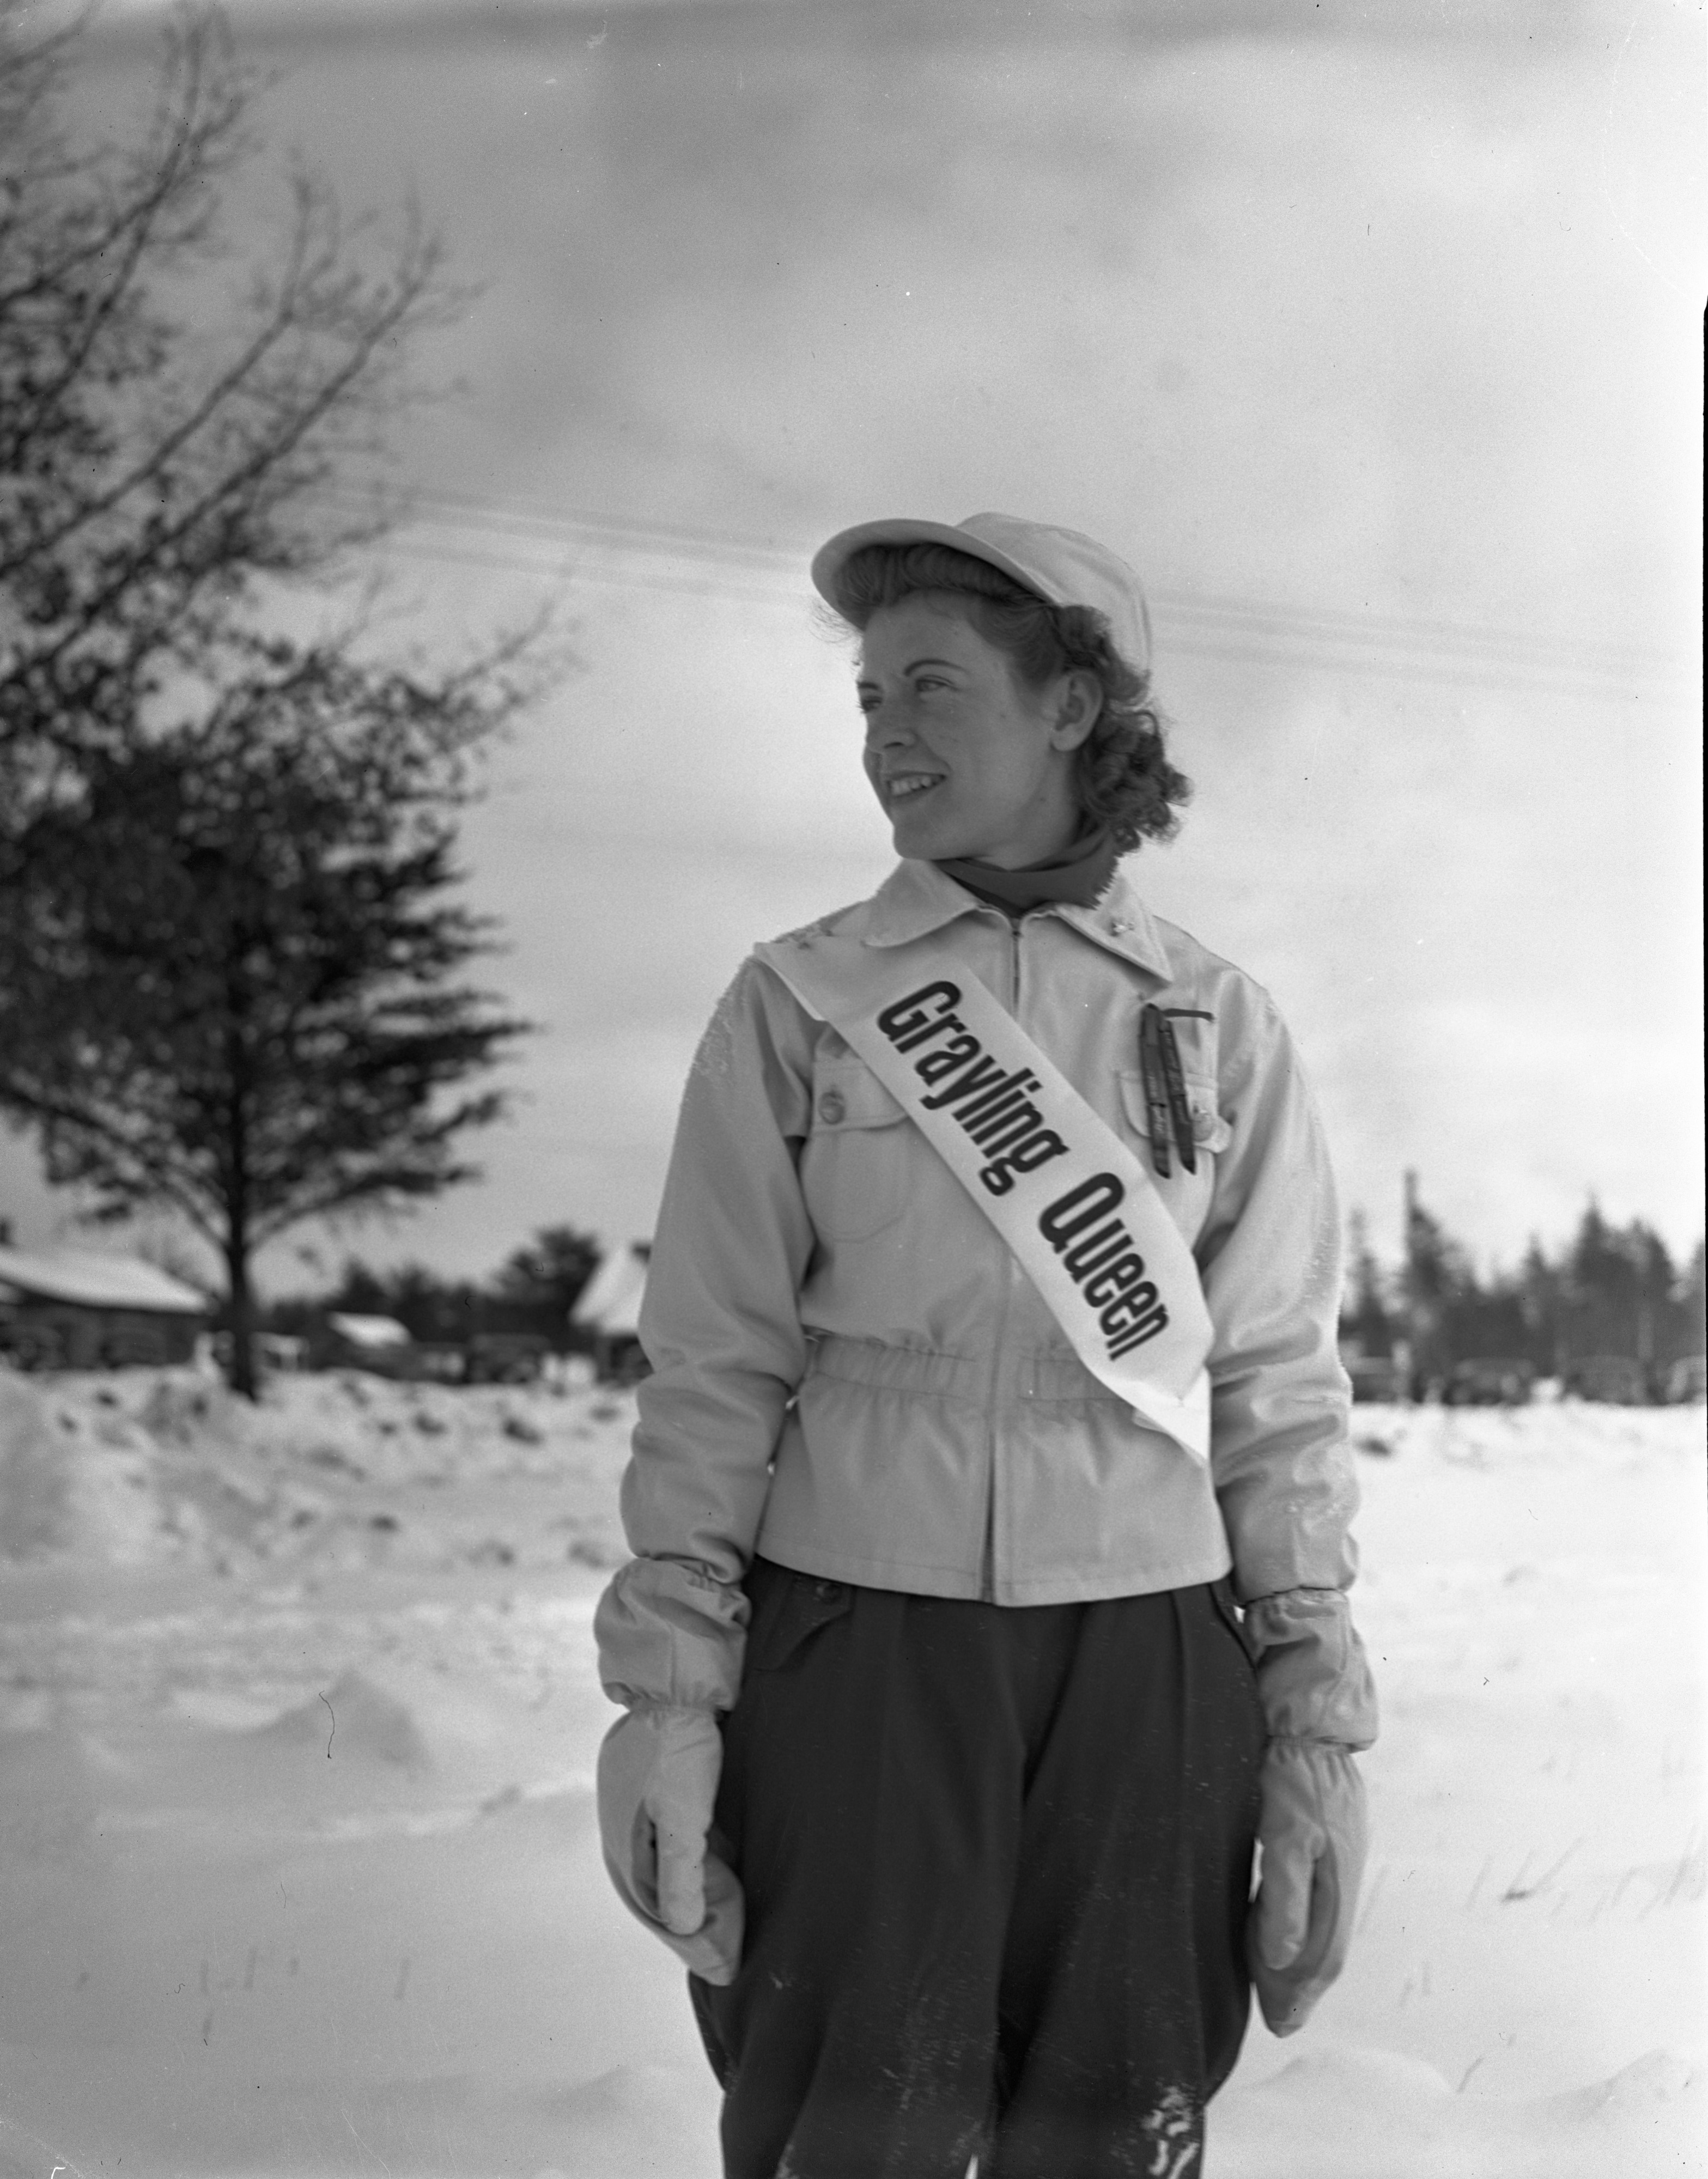 Grayling Queen Yvonne Bradley, January 1941 image